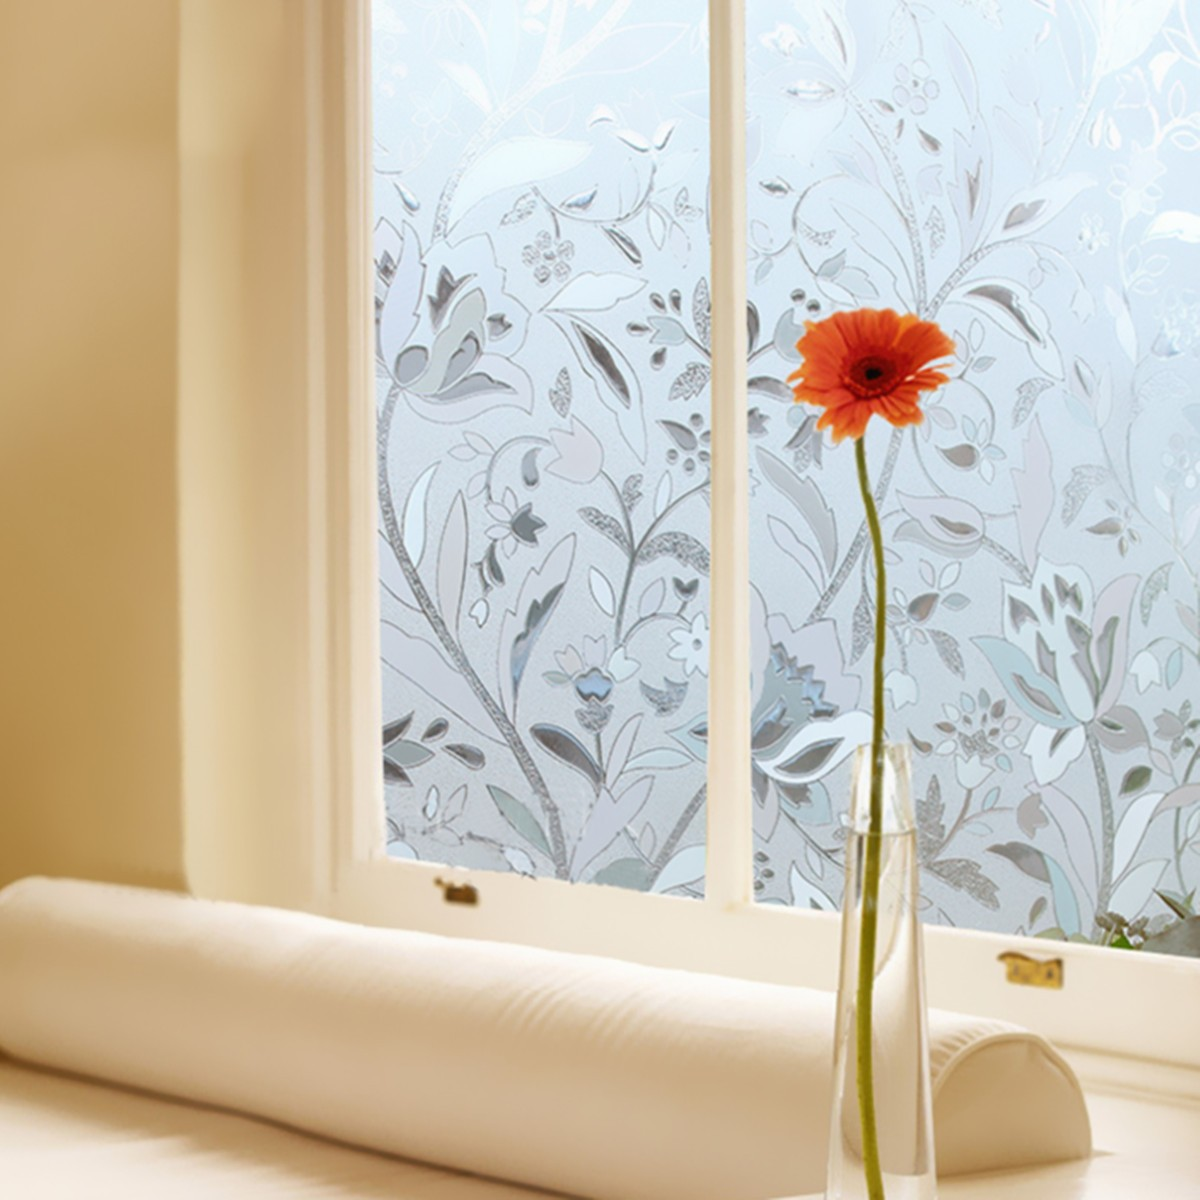 Waterproof PVC Frosted Flower Window Glass Film Sticker Static Cling Home Bathroom Protect Privacy Decor 17x40""